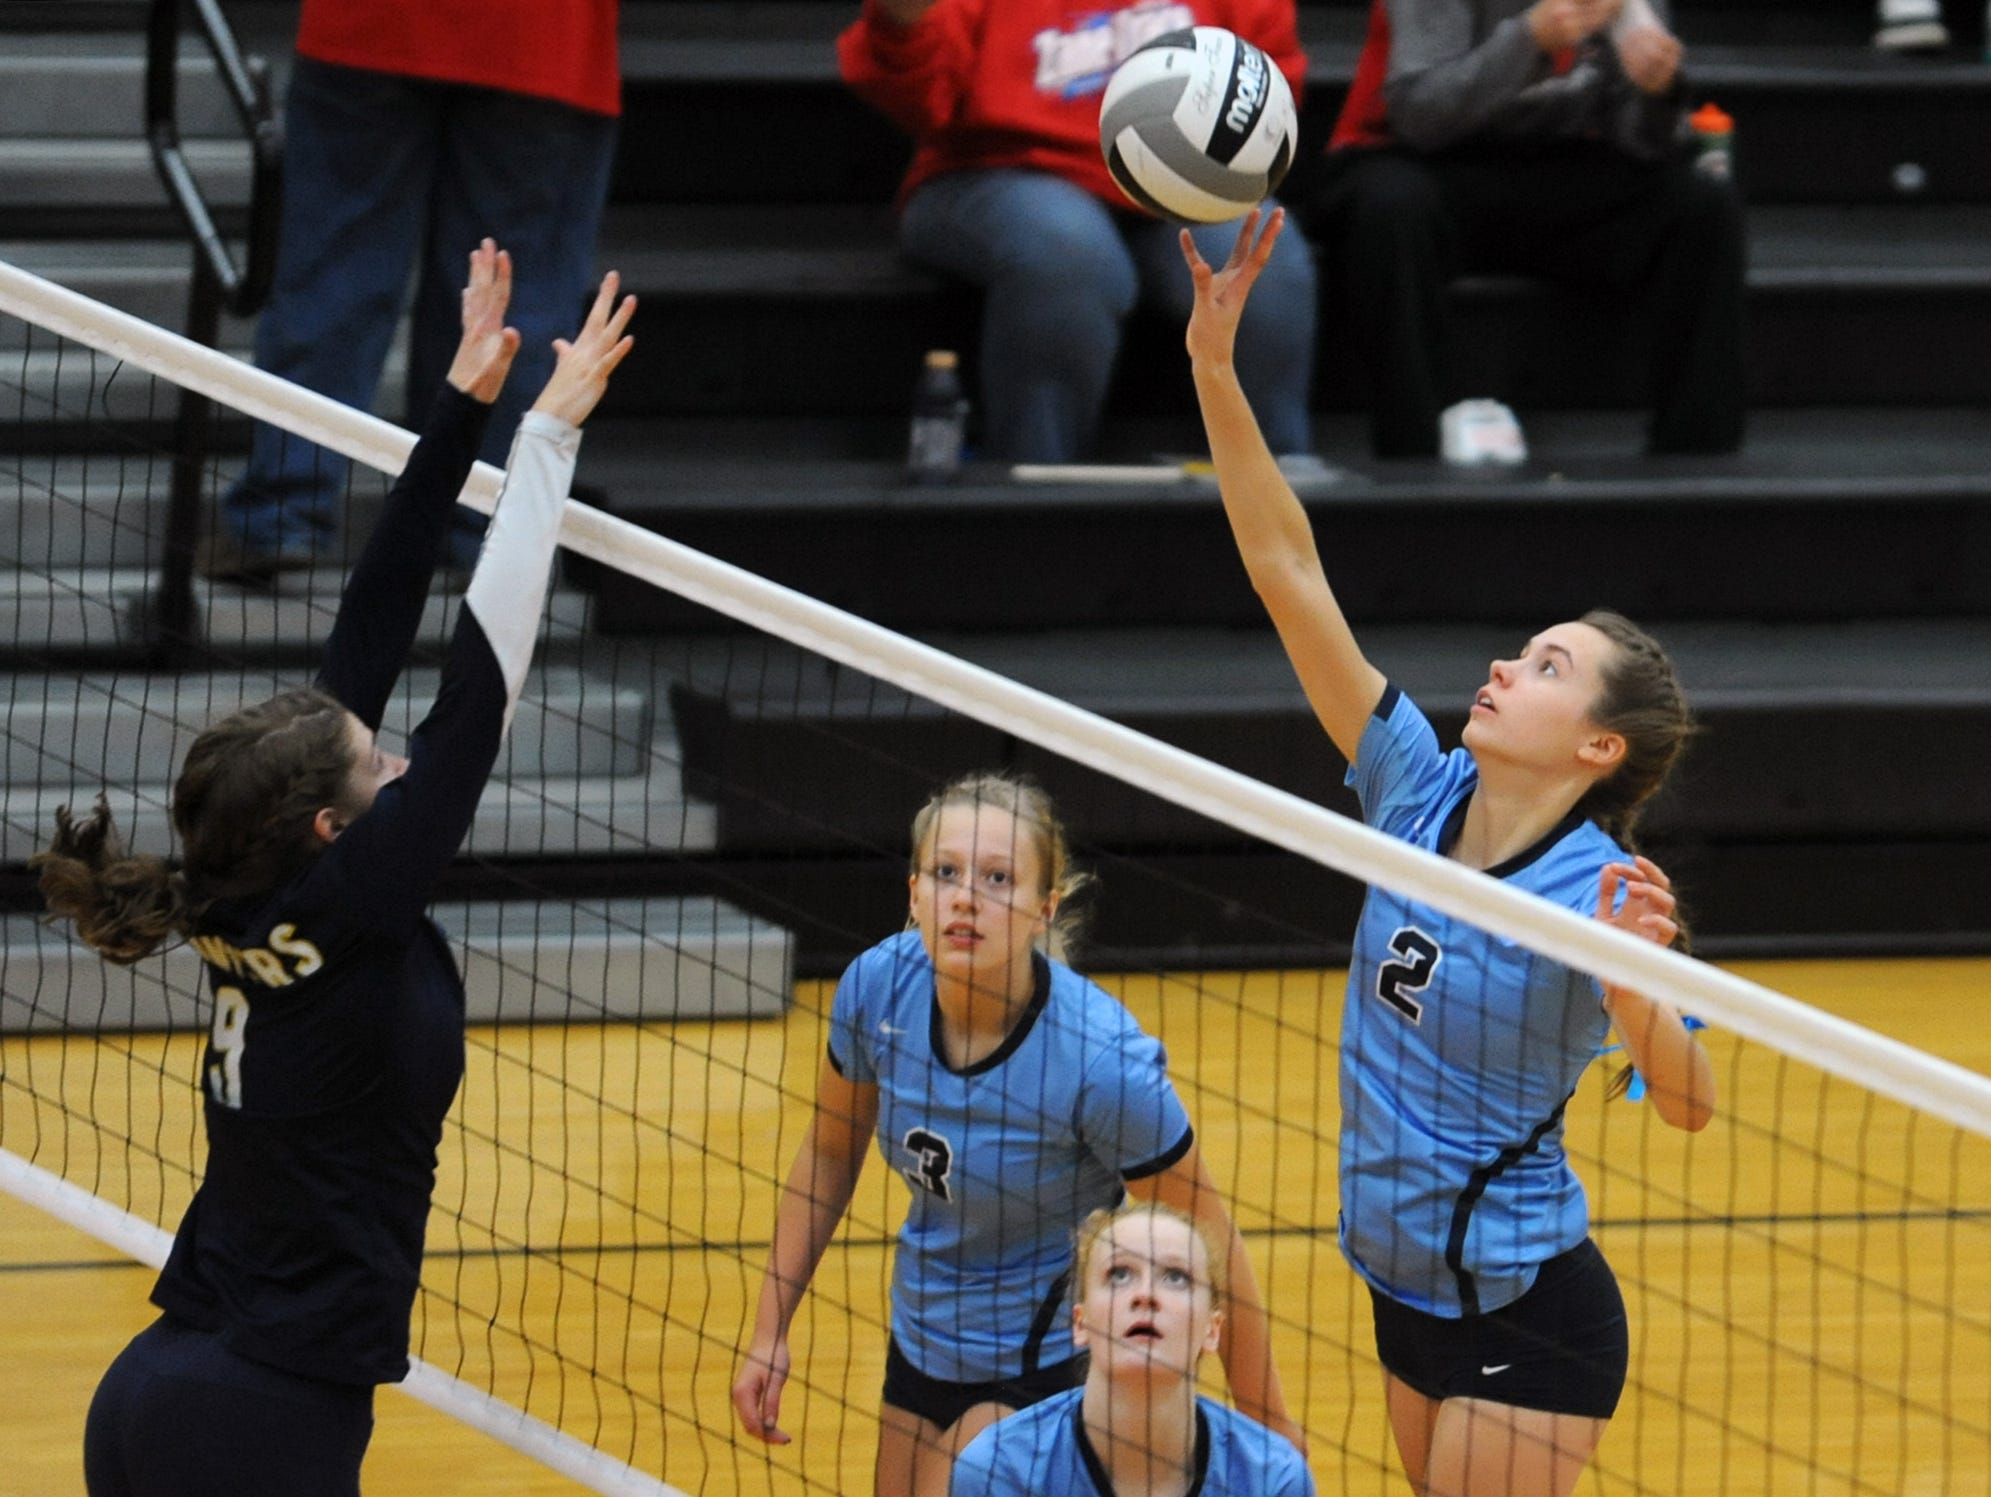 Adena's Carissa Poehler tips the ball over a South Point opponent Wednesday at Waverly High School. Adena defeated South Point 3-0.